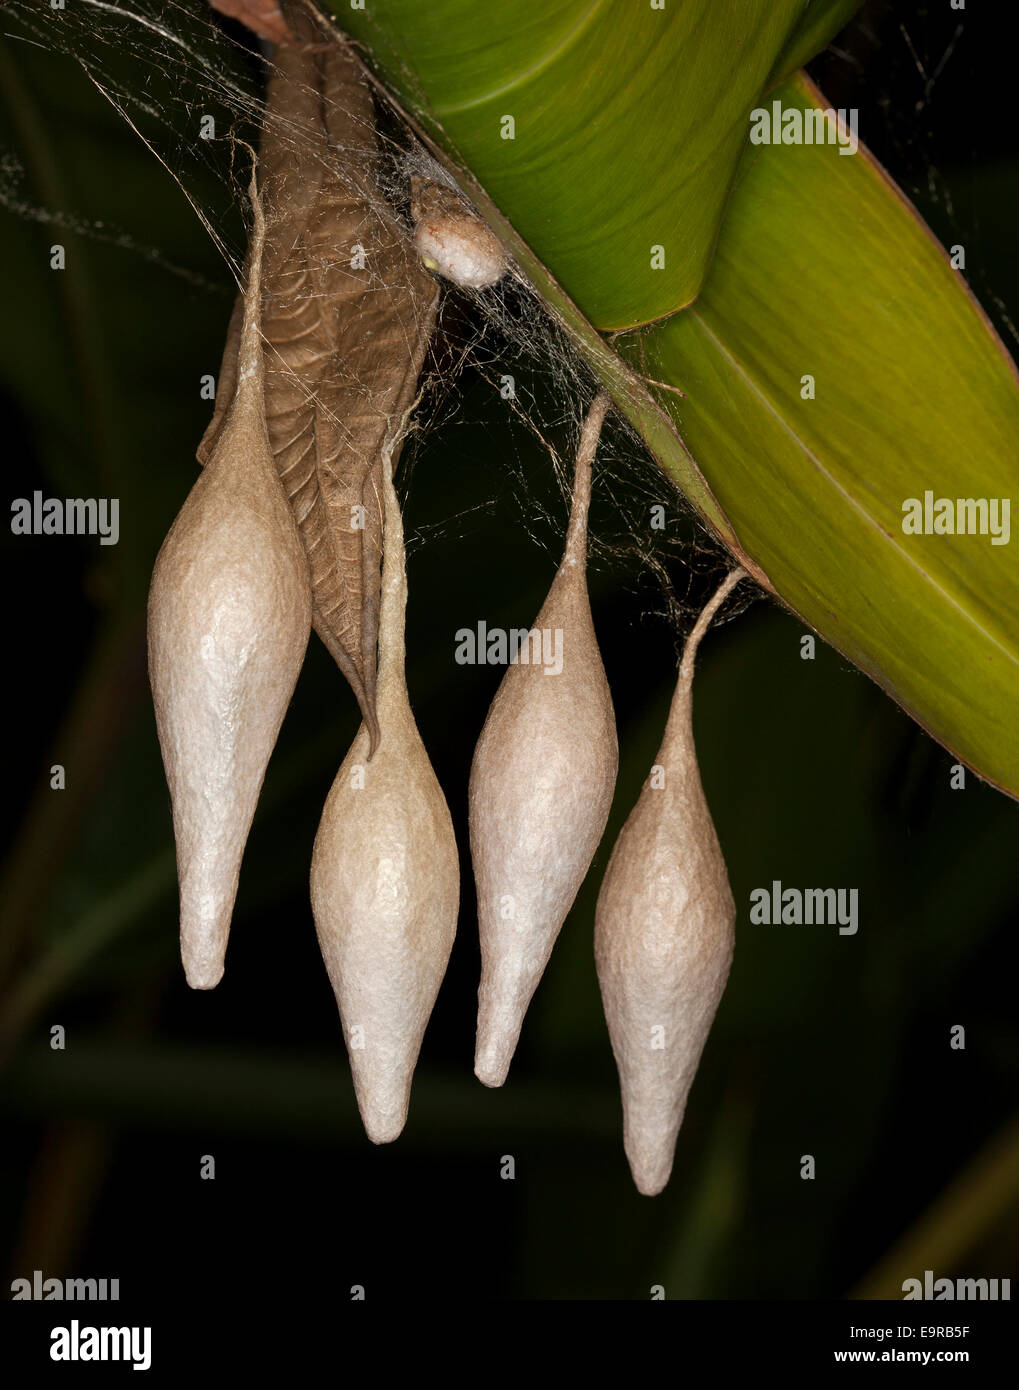 Unusual long sculptured egg sacs, created from silk thread by Australian bolas spider, Ordgarius magnificus hanging - Stock Image